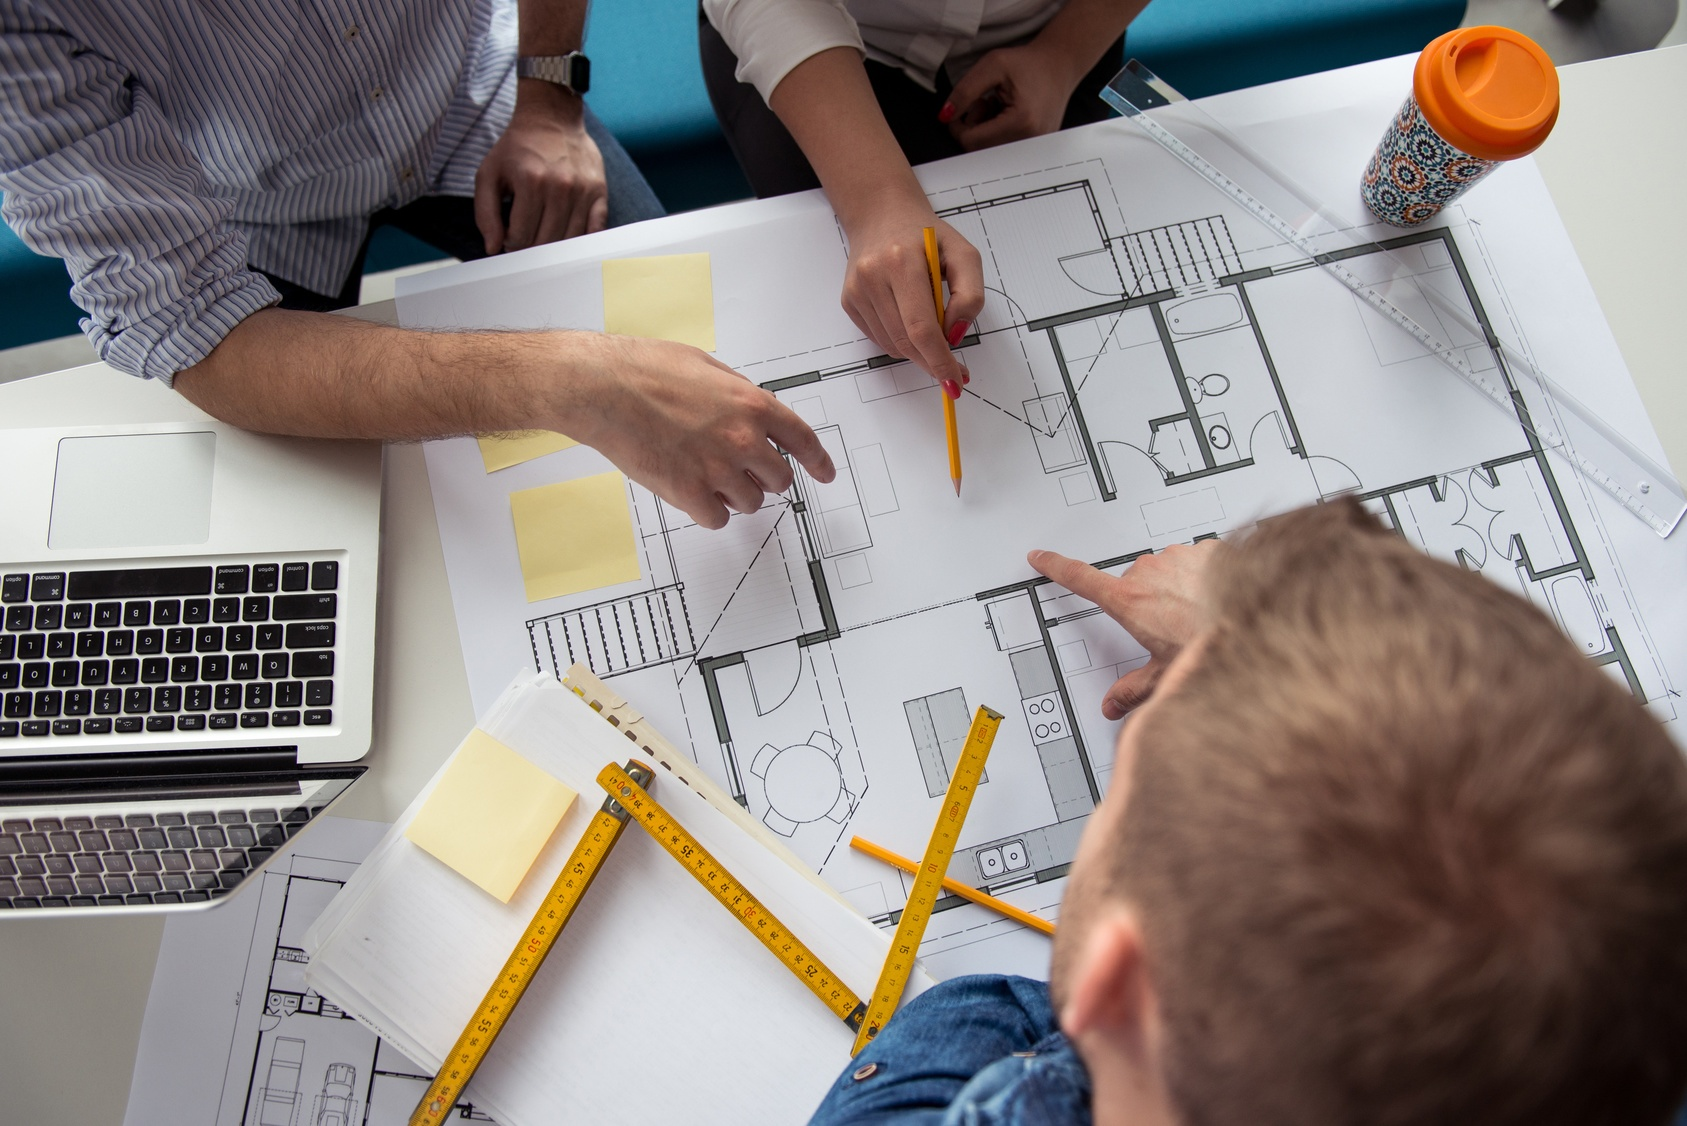 5 Questions You Should Ask Your Local Architects Before Hiring